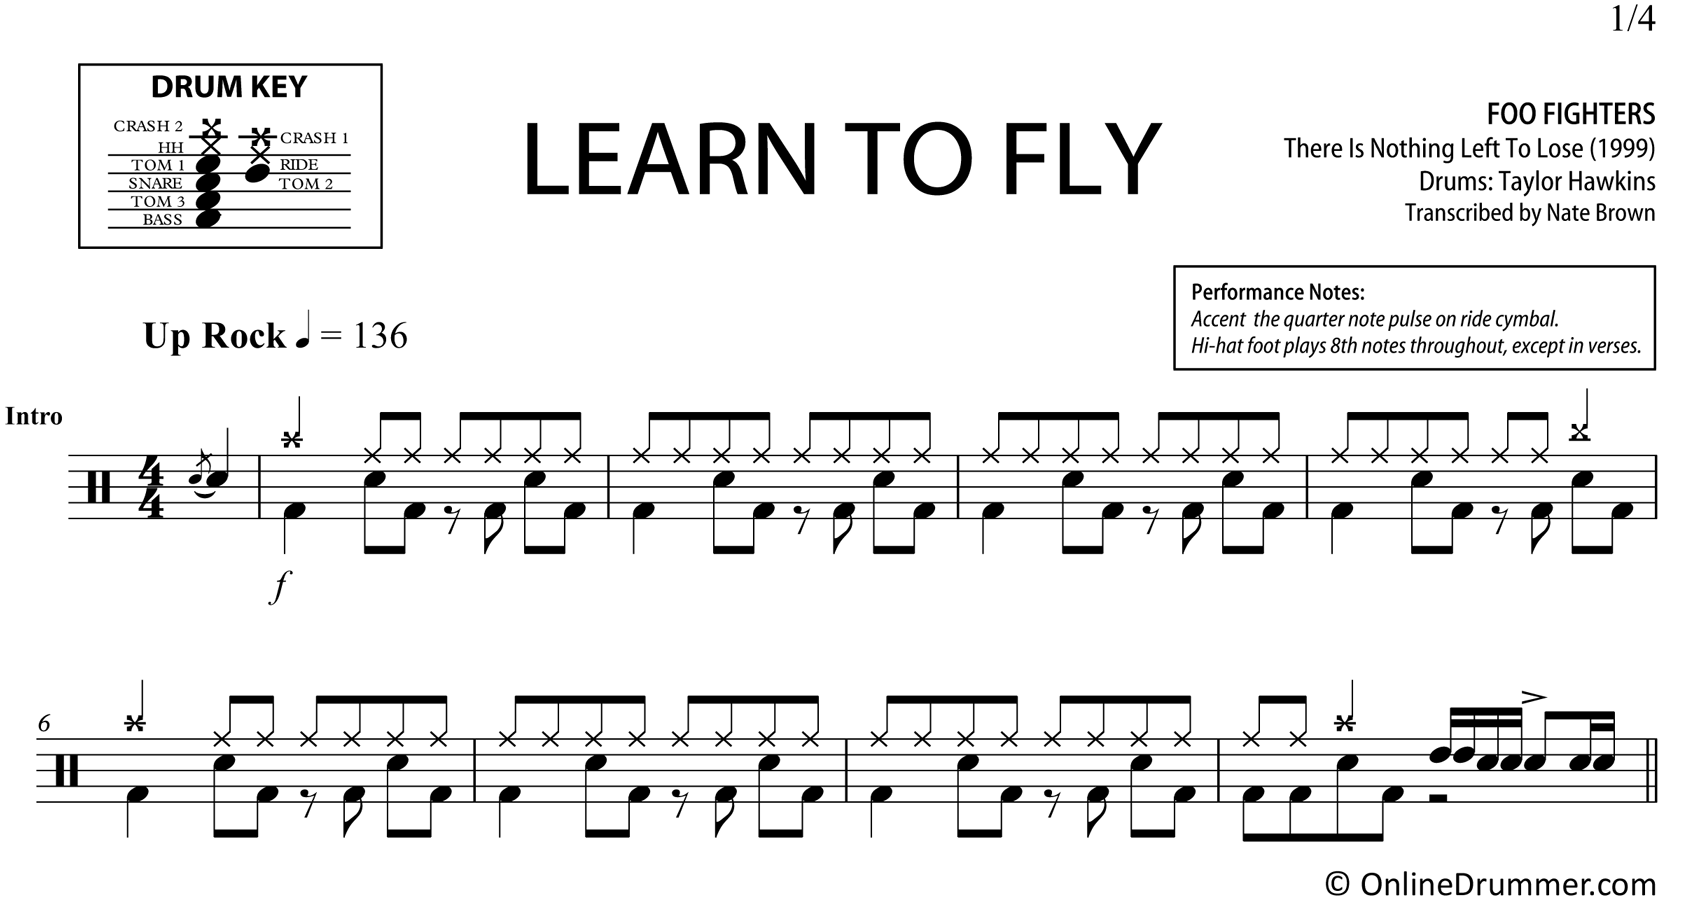 Learn to Fly - Foo Fighters - Drum Sheet Music